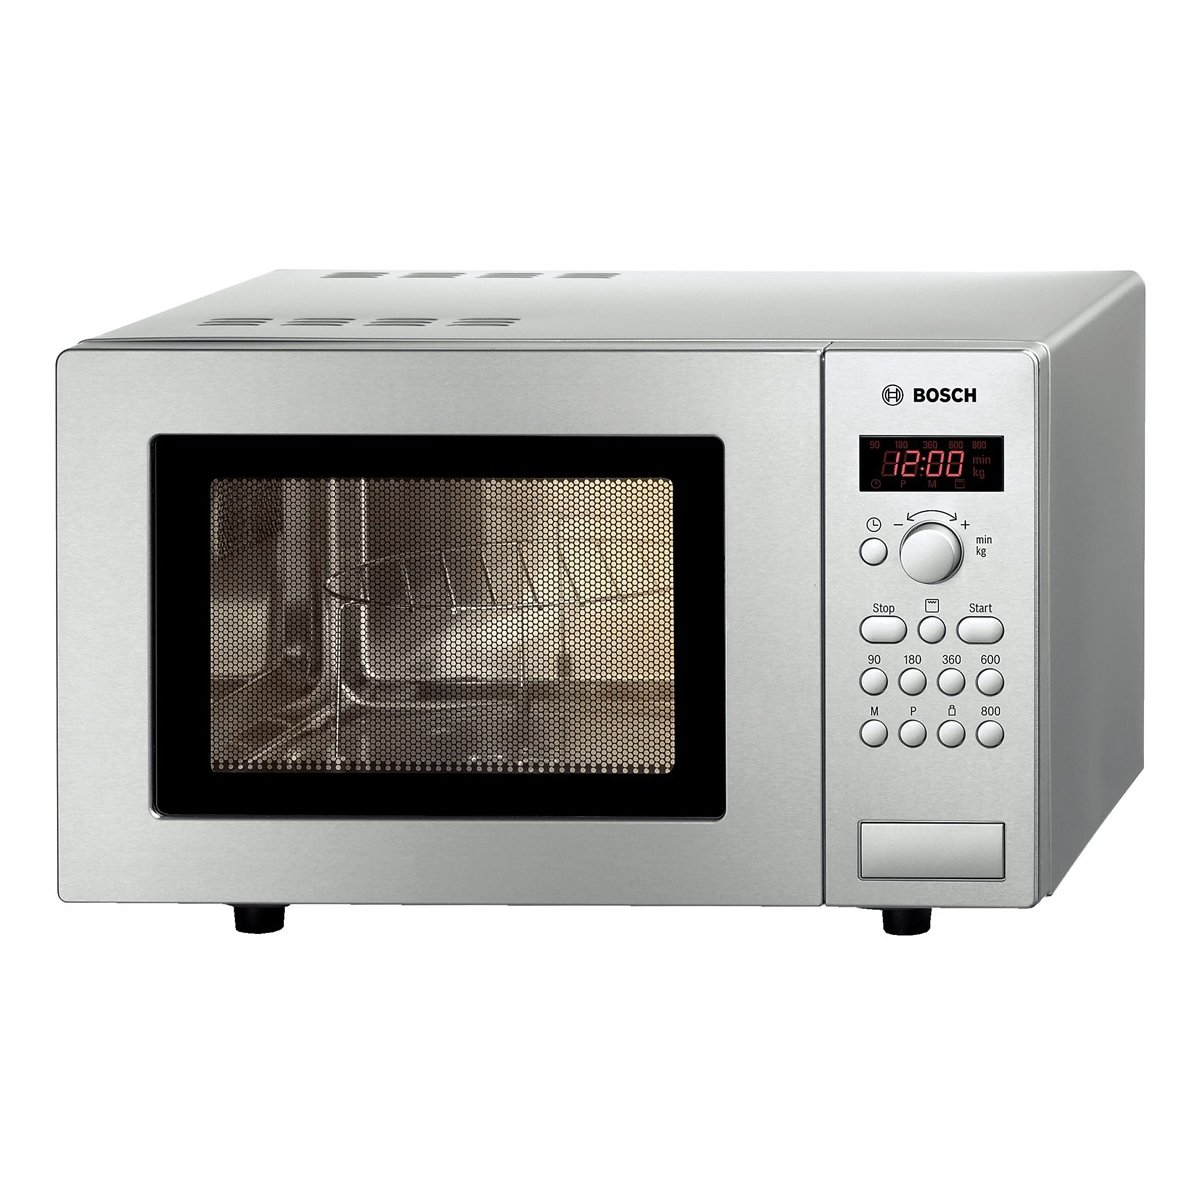 Bosch freestanding microwave oven with quartz grill, 17ltr, stainless steel, HMT75G451B